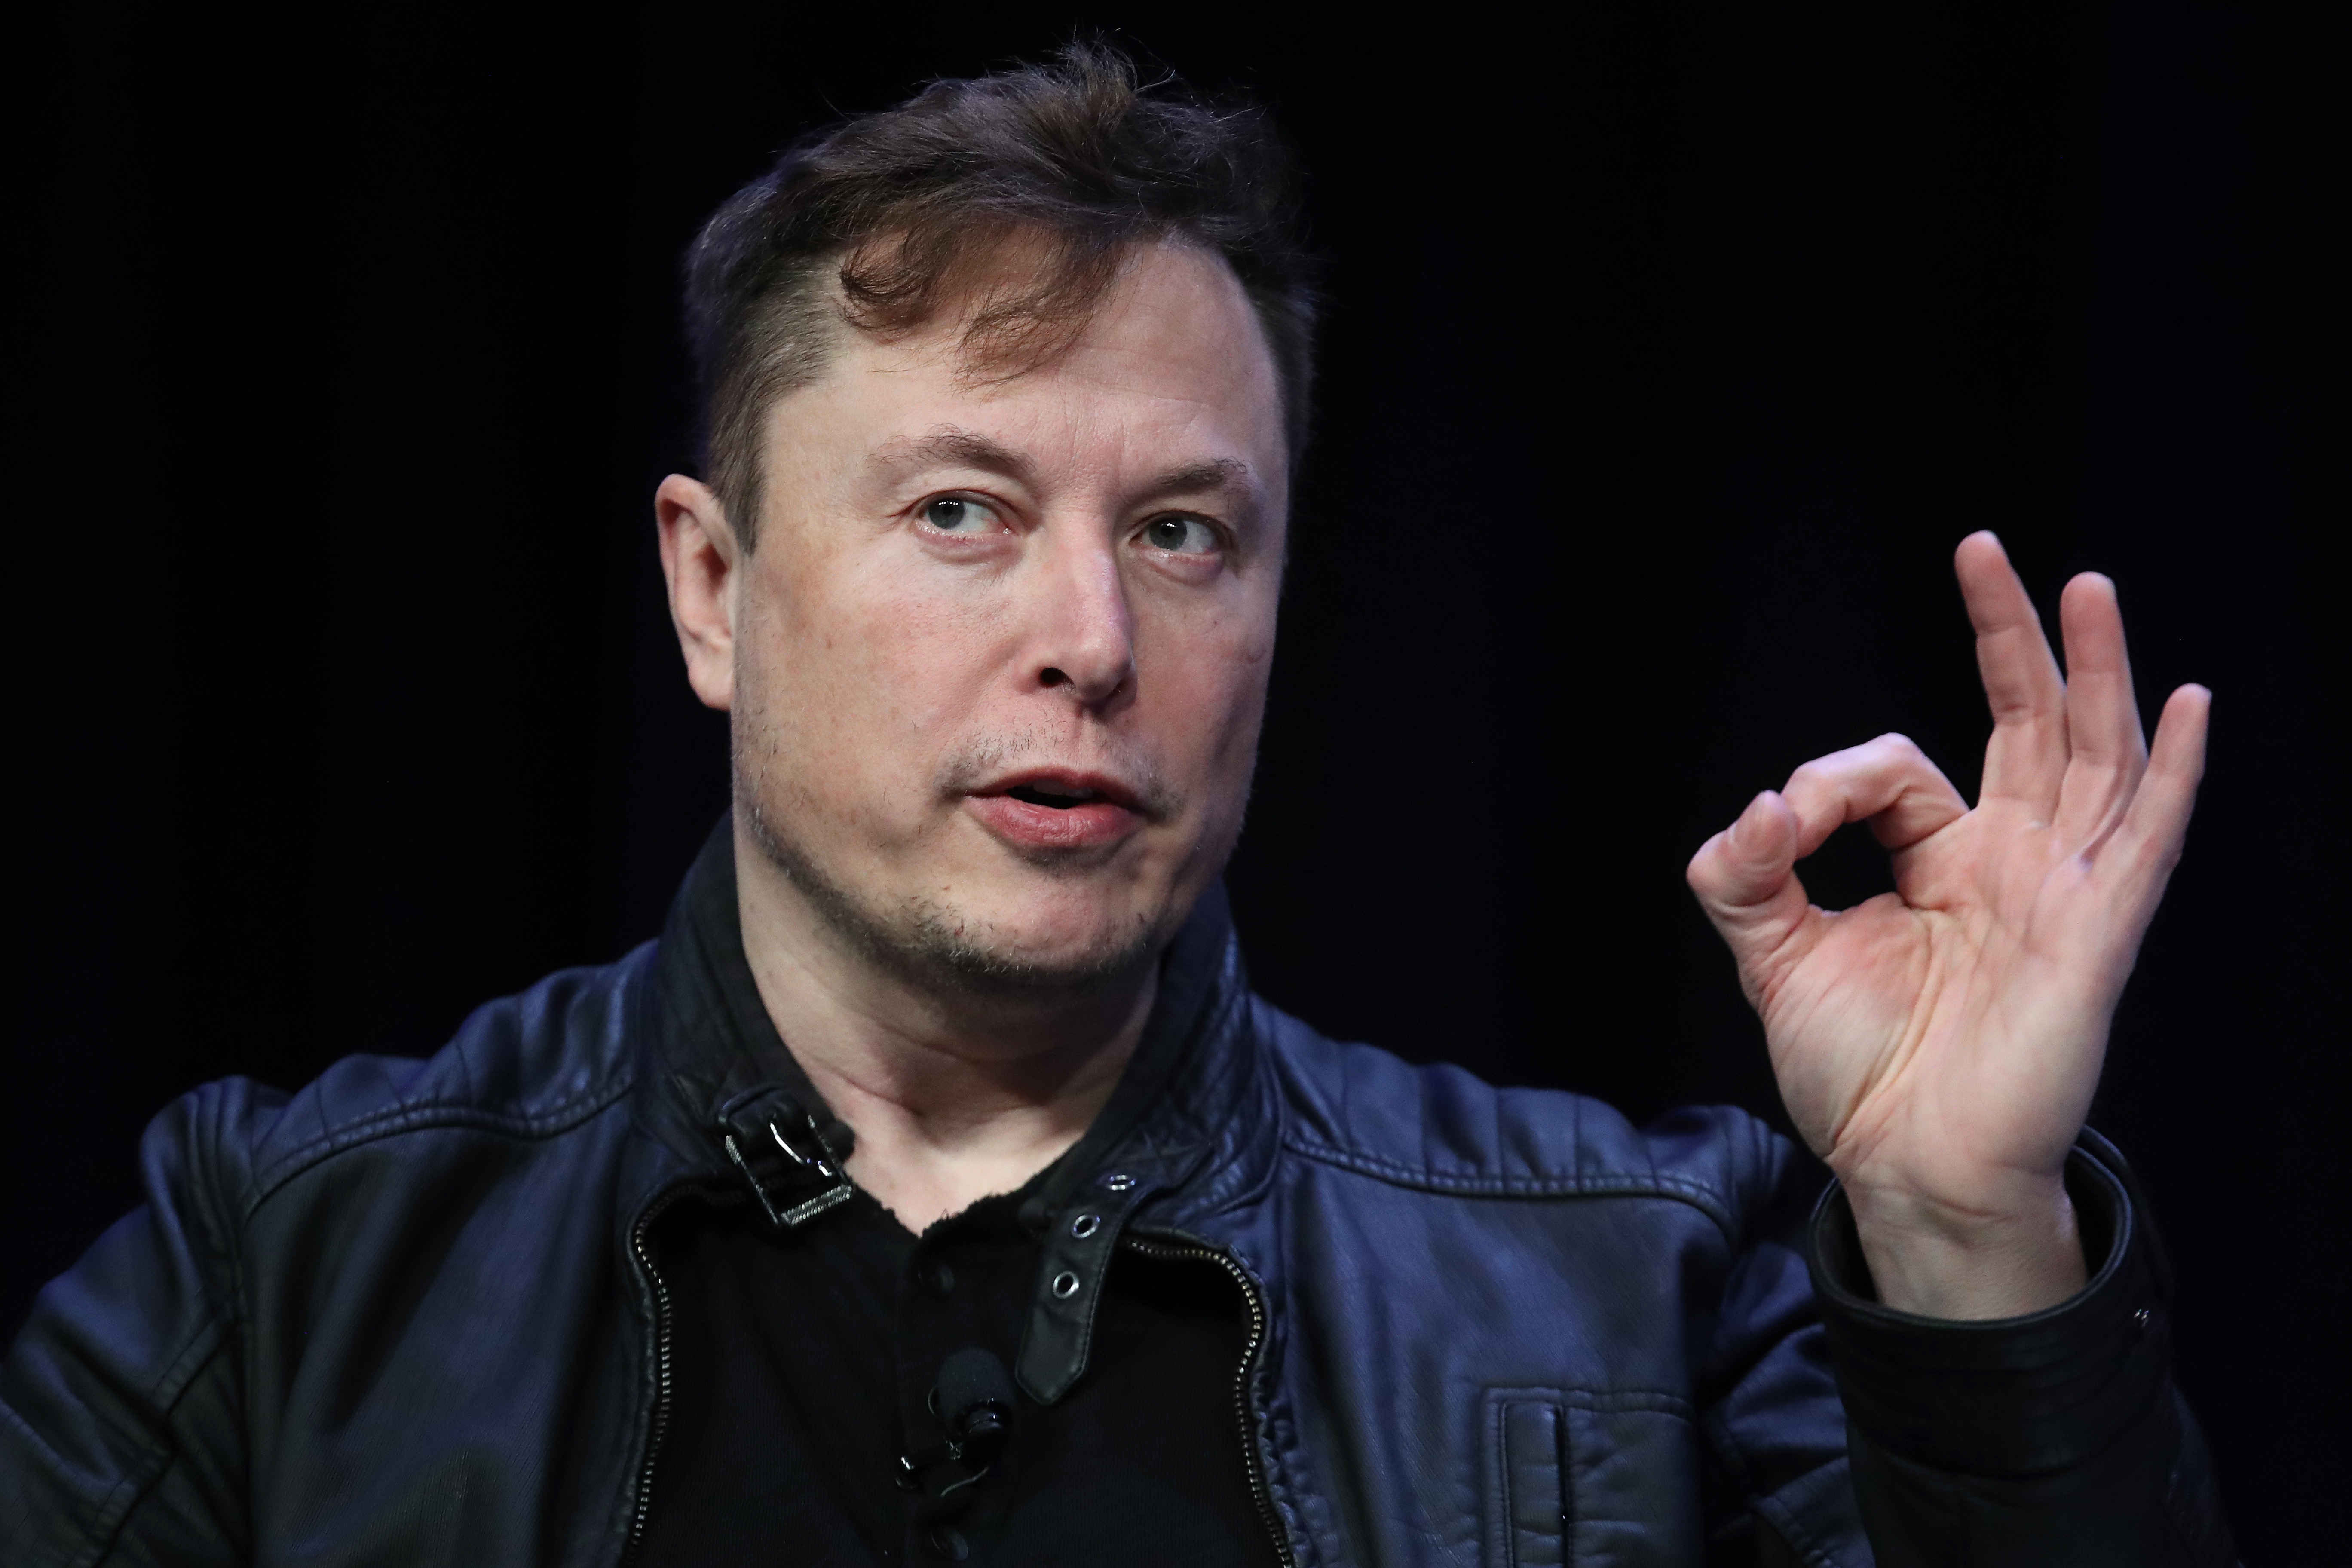 Elon Musk Speaks At Satellite Conference In Washington, DC